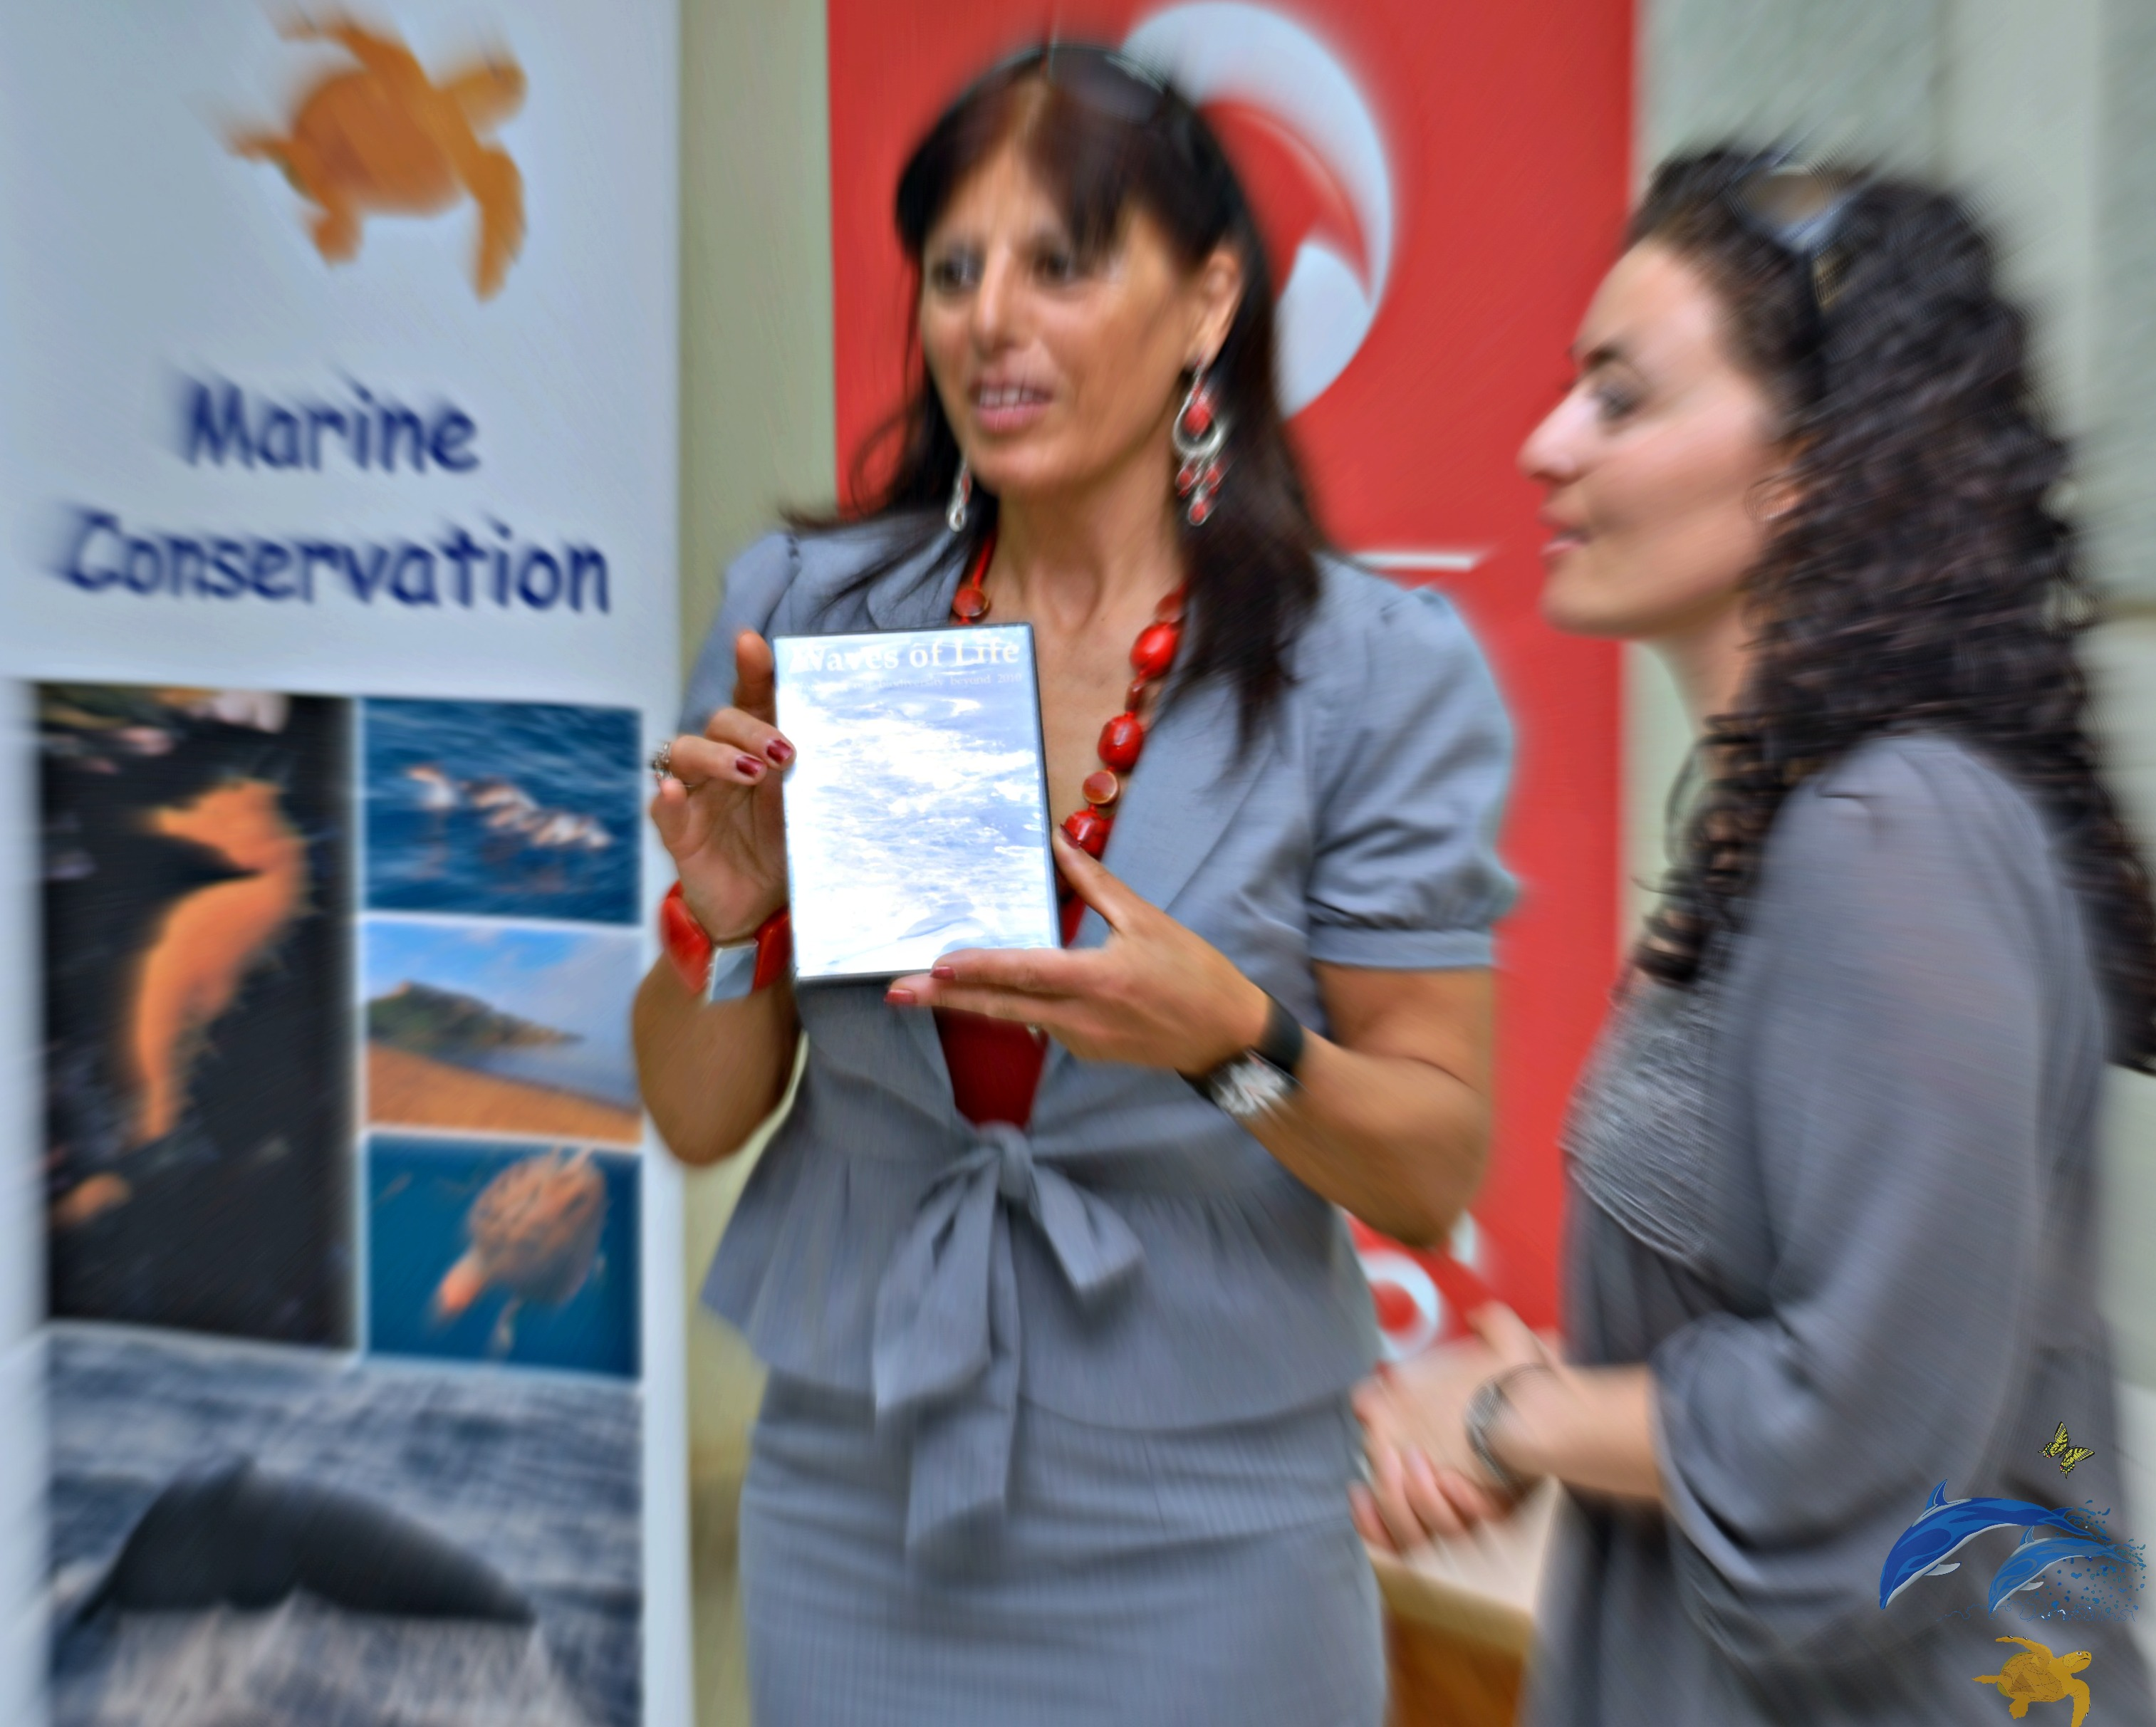 BioDiv with student 2009cedit